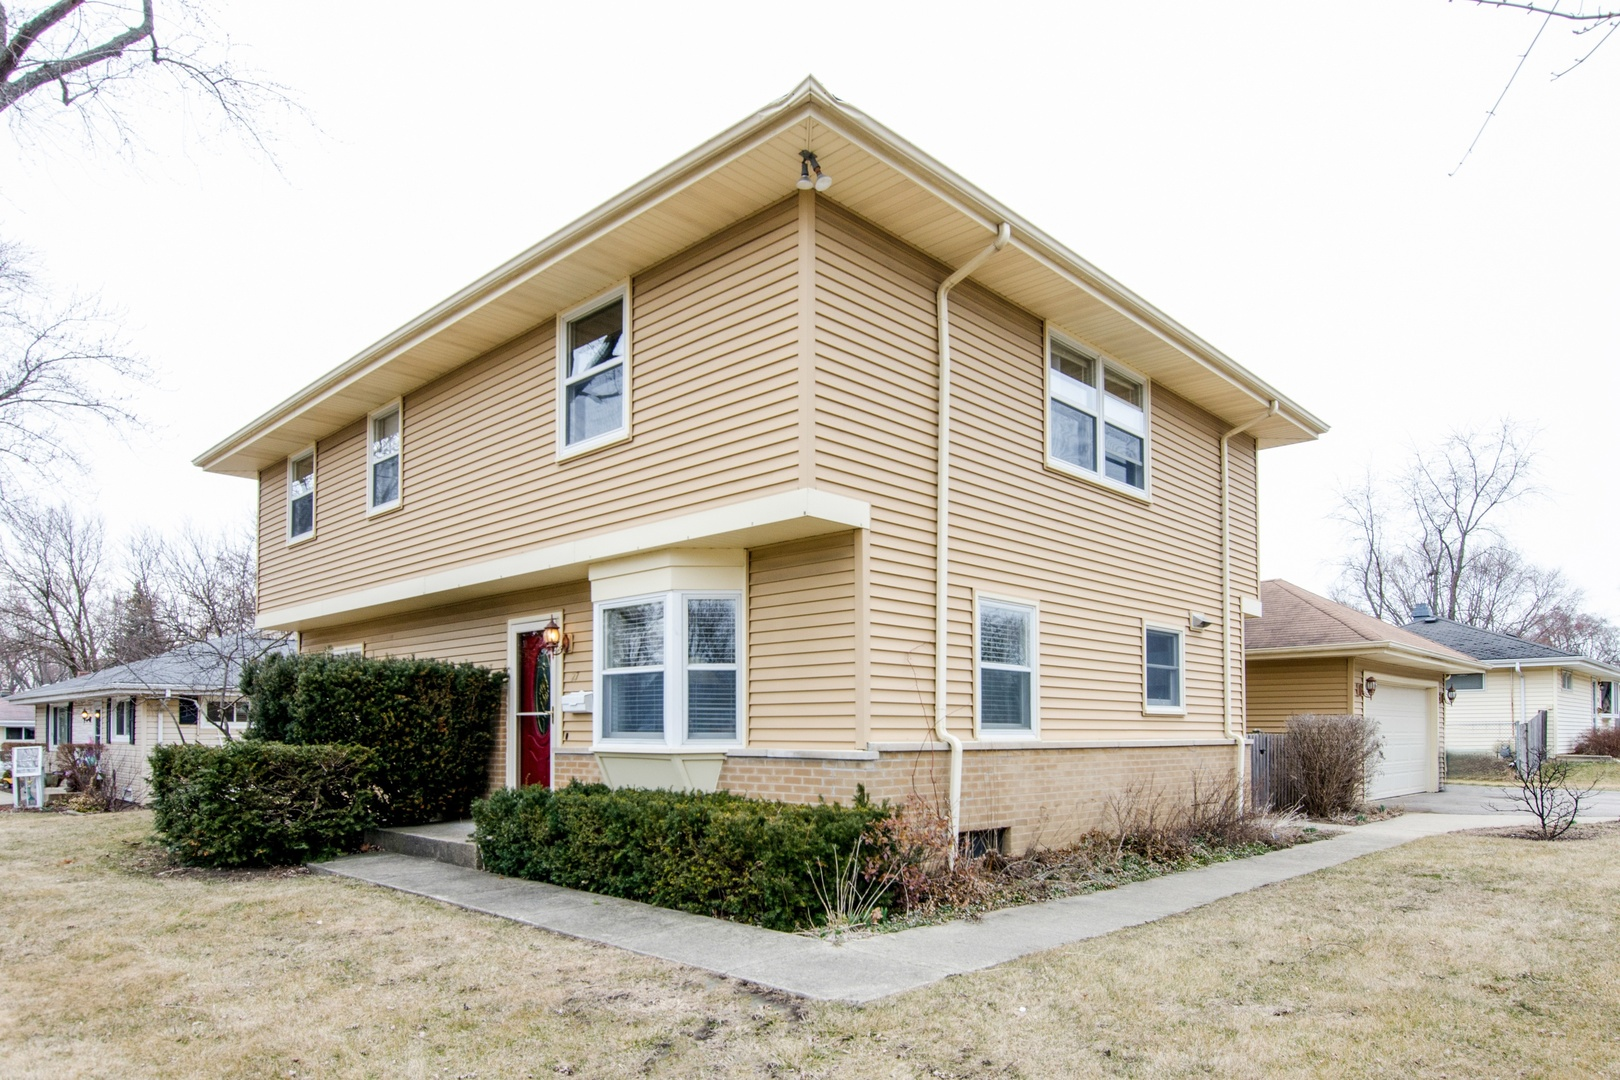 27 Johnathan Rd, Lake Zurich, IL 60047 - MLS 09897621 - Coldwell Banker